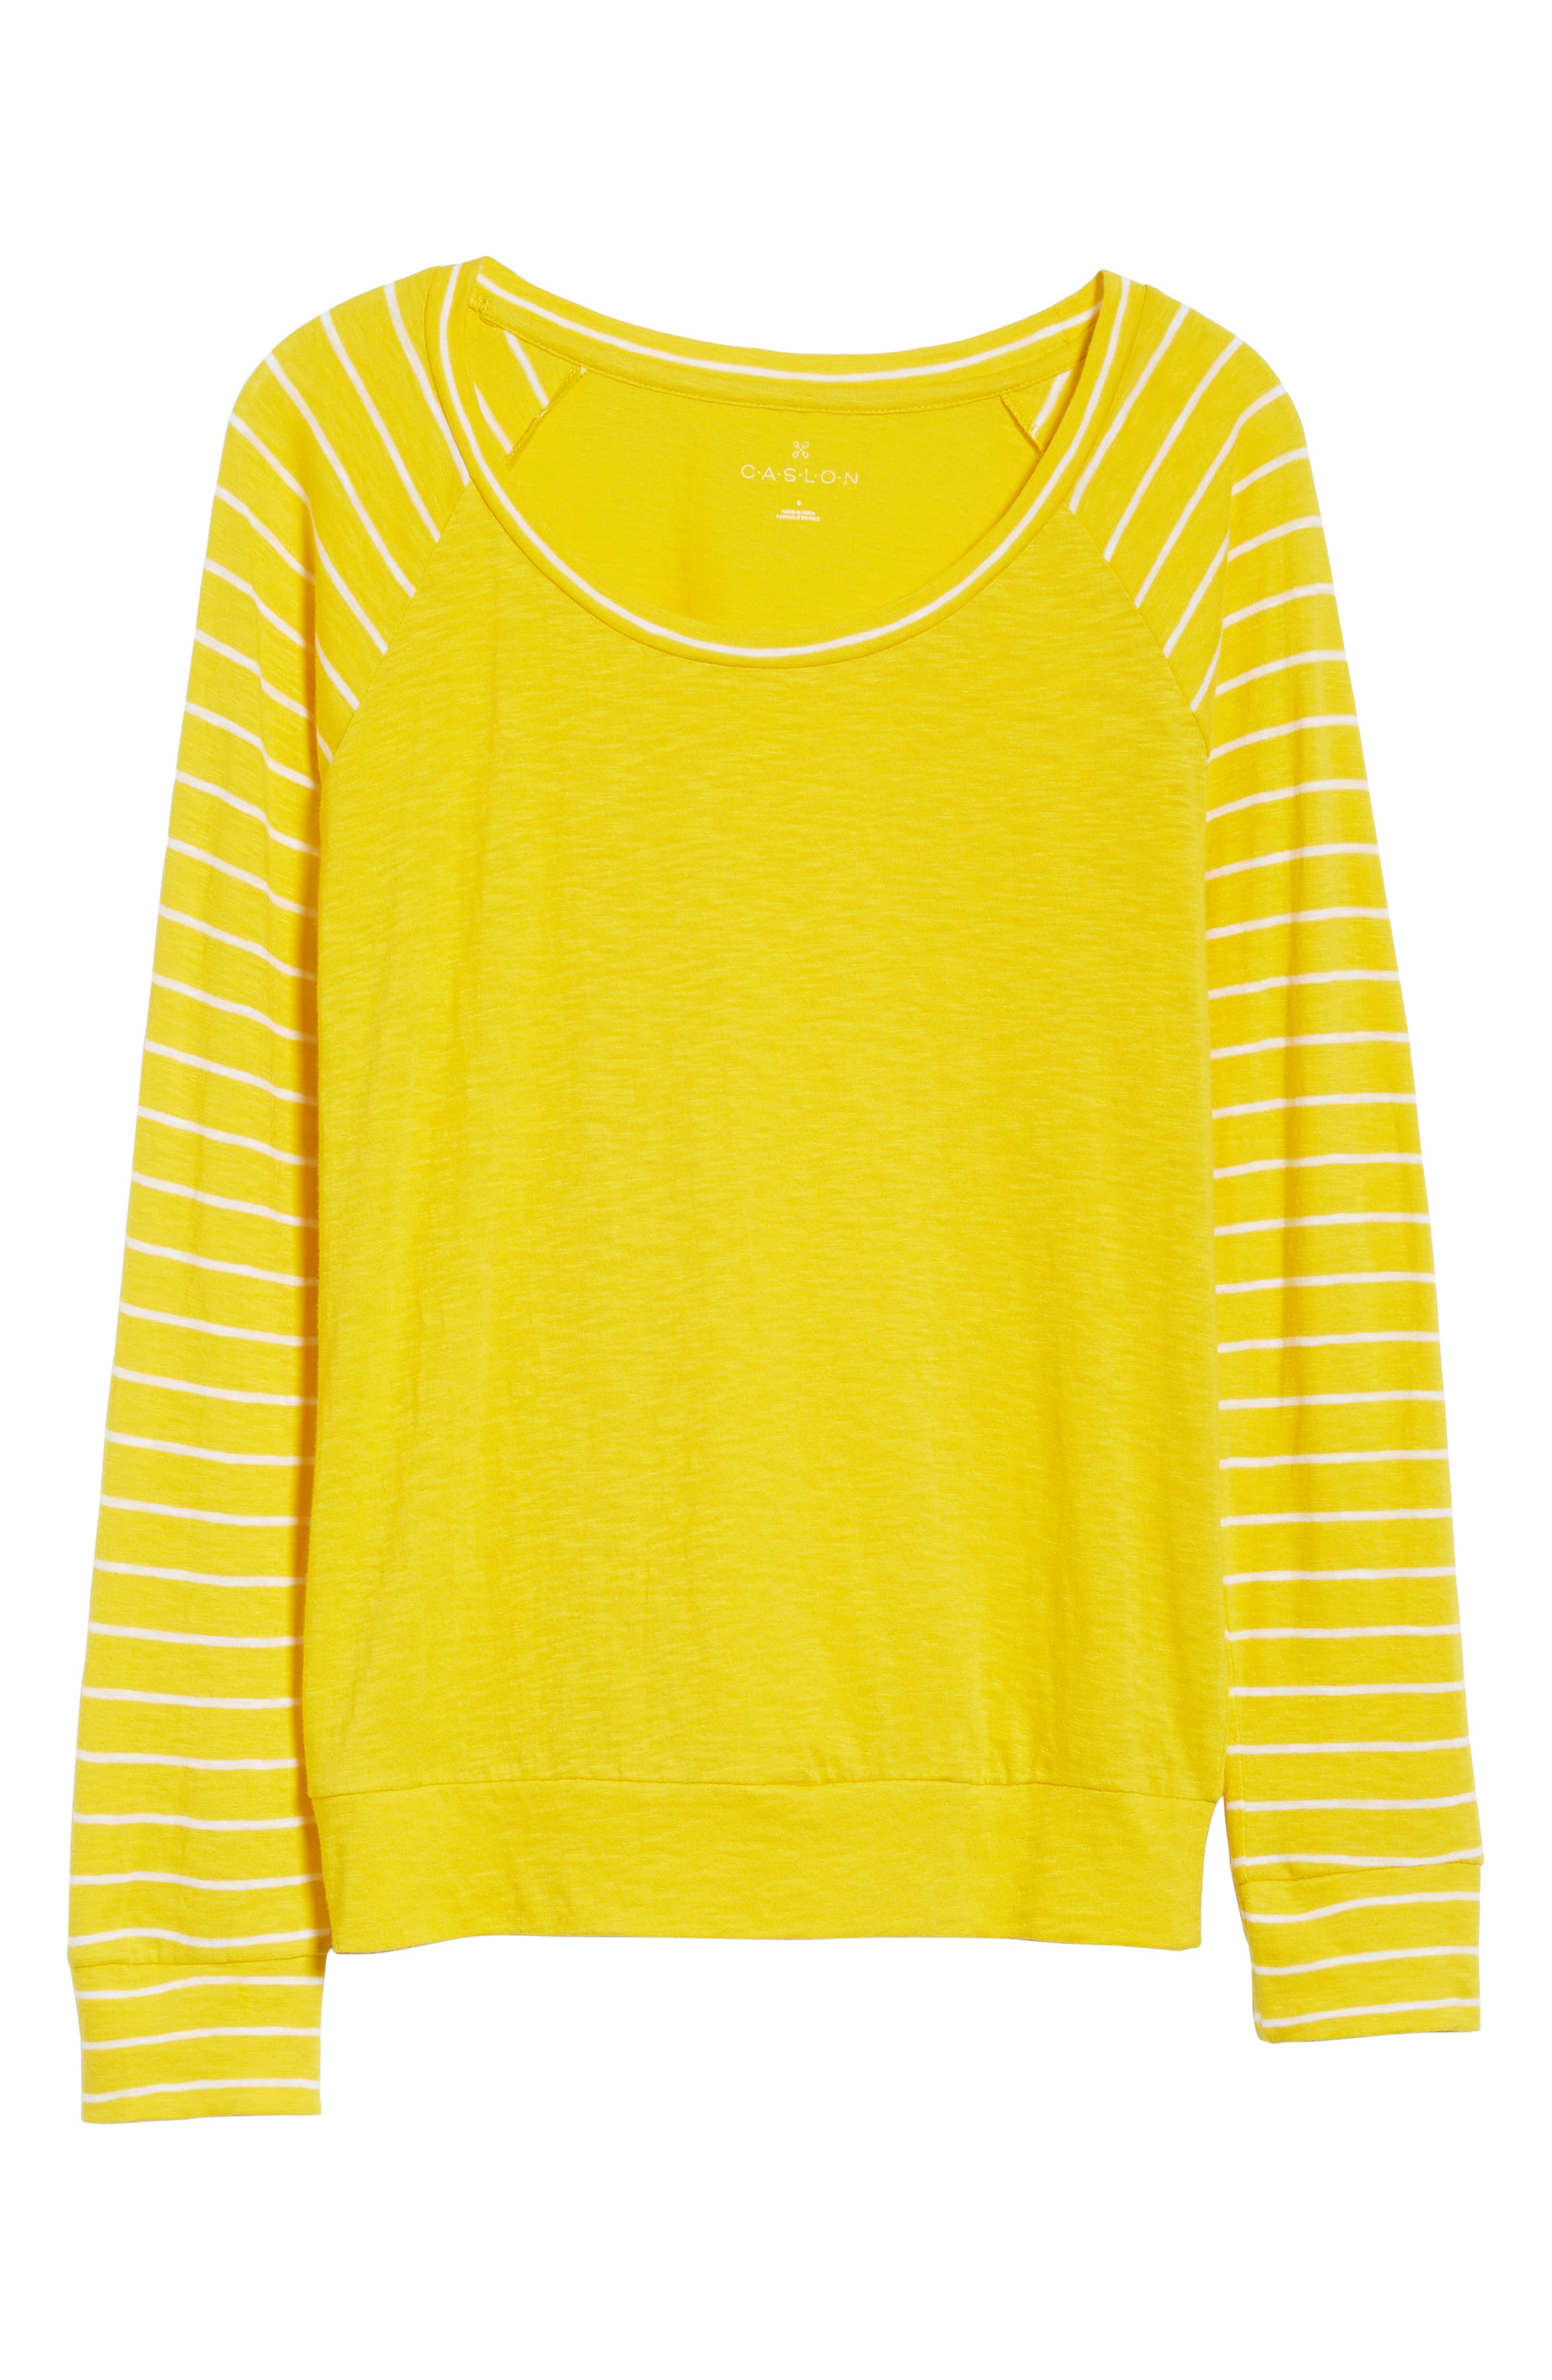 Lightweight Colorblock Cotton Tee,                             Alternate thumbnail 29, color,                             Yellow- White Lukah Combo